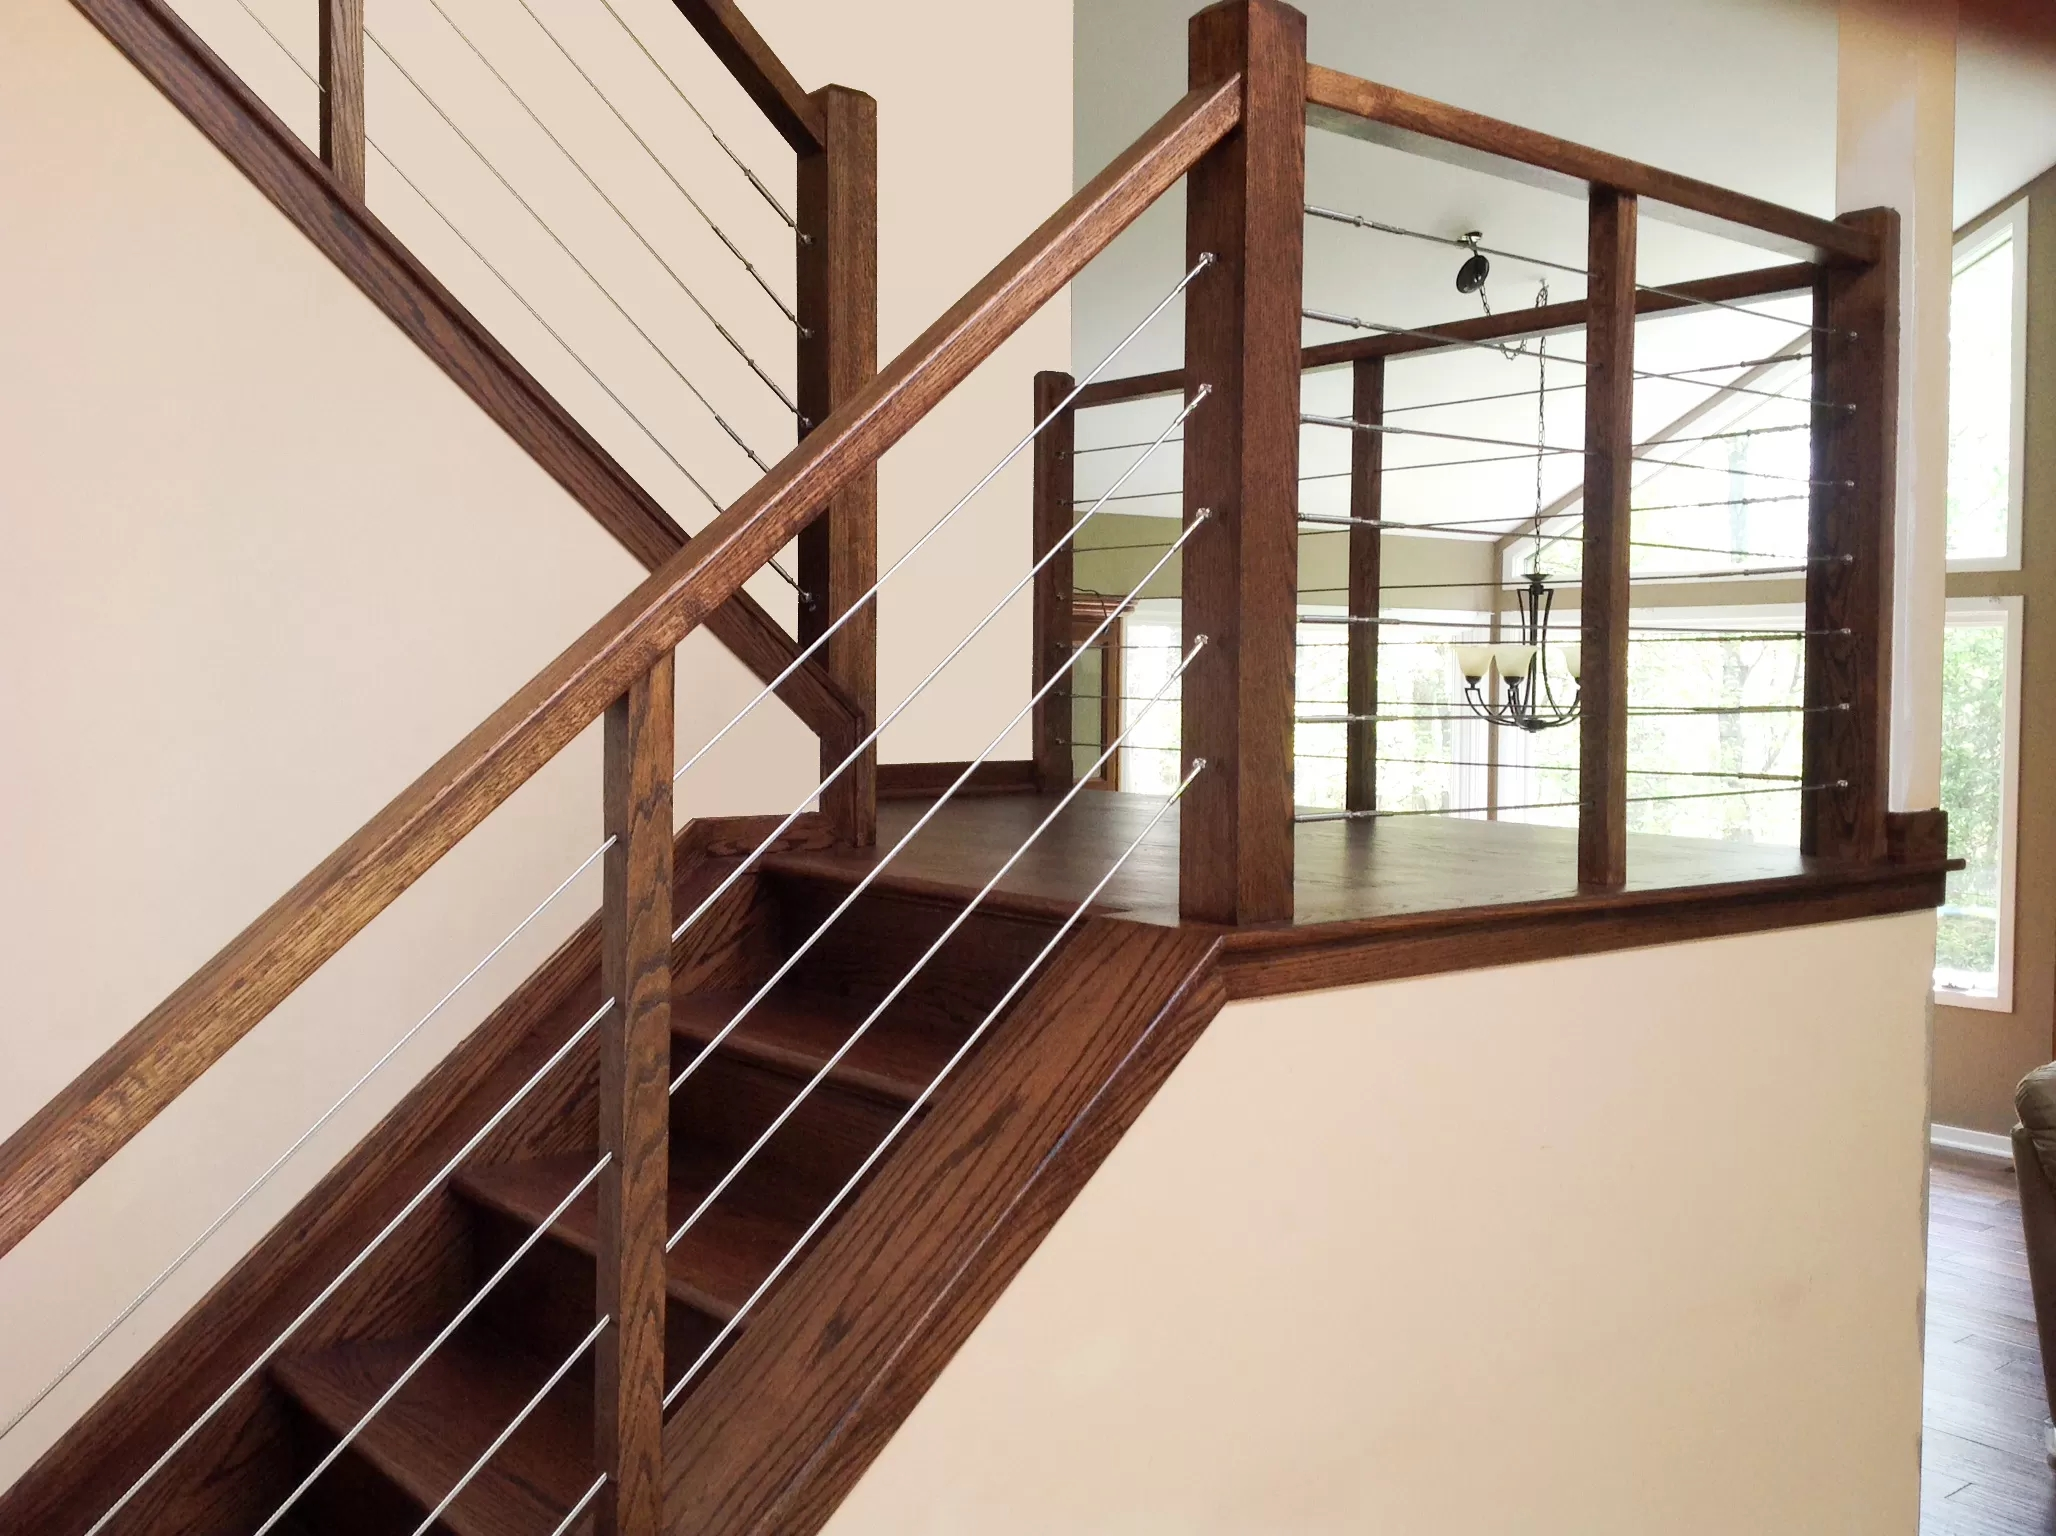 Cable Infill Vista Railings | Wood And Wire Stair Railing | Before And After | Coastal | Natural Wood | Residential | Utility Panel